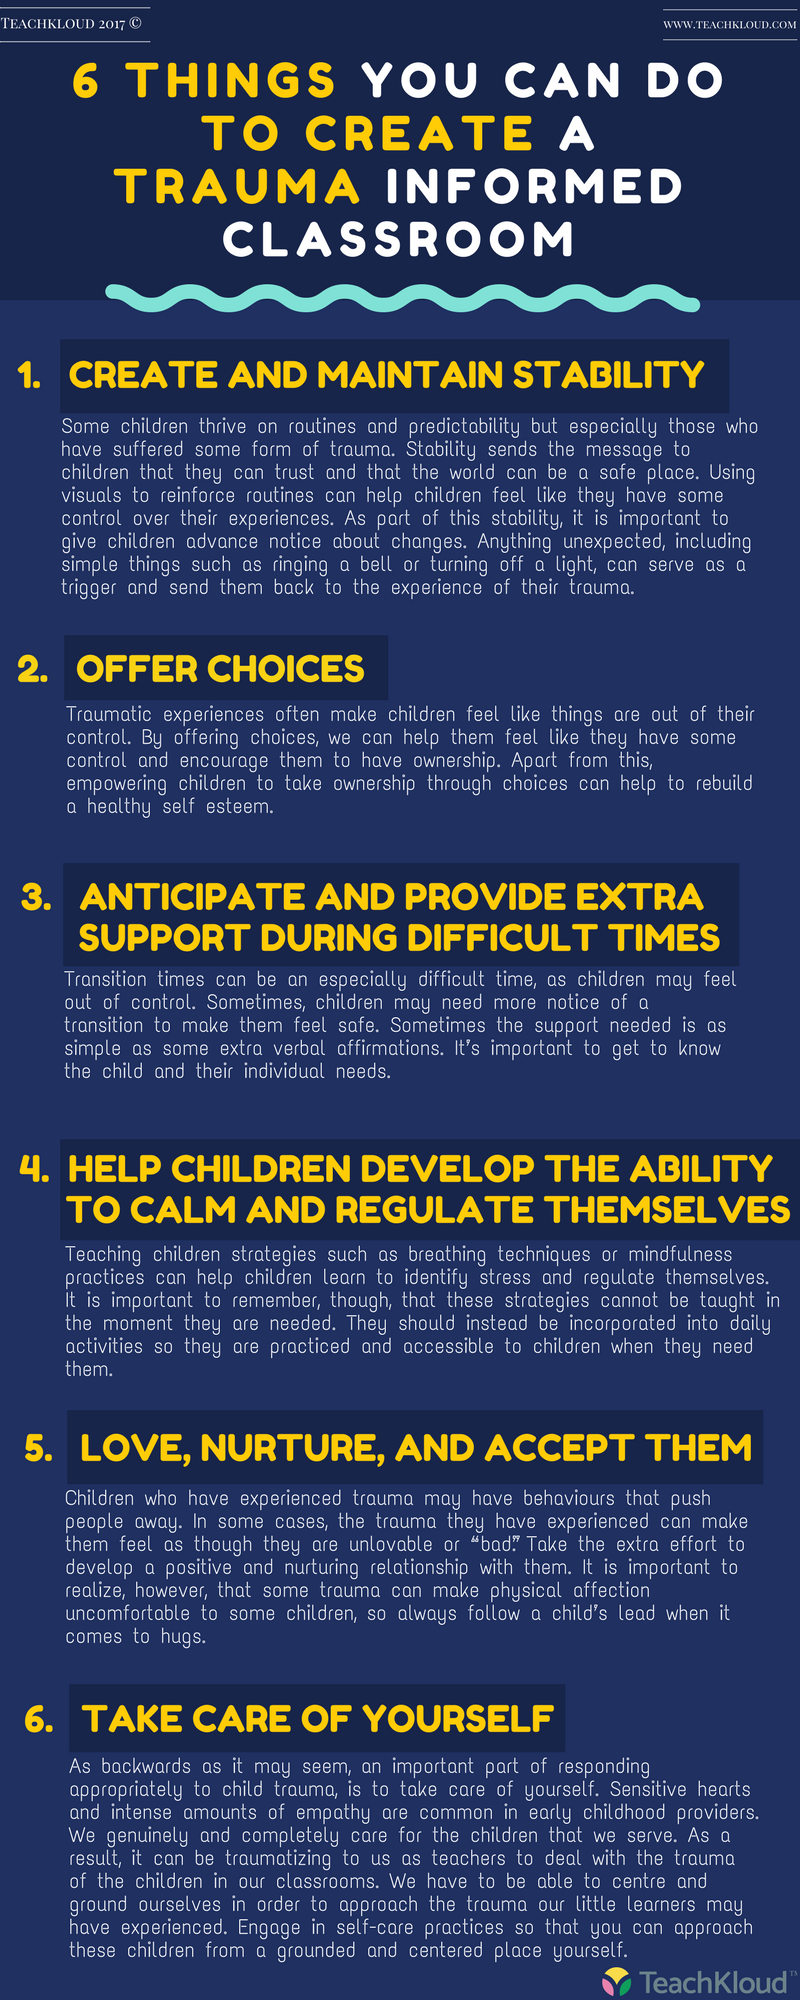 Trauma Can Make It Hard For Kids To >> 6 Things You Can Do To Create A Trauma Informed Learning Environment